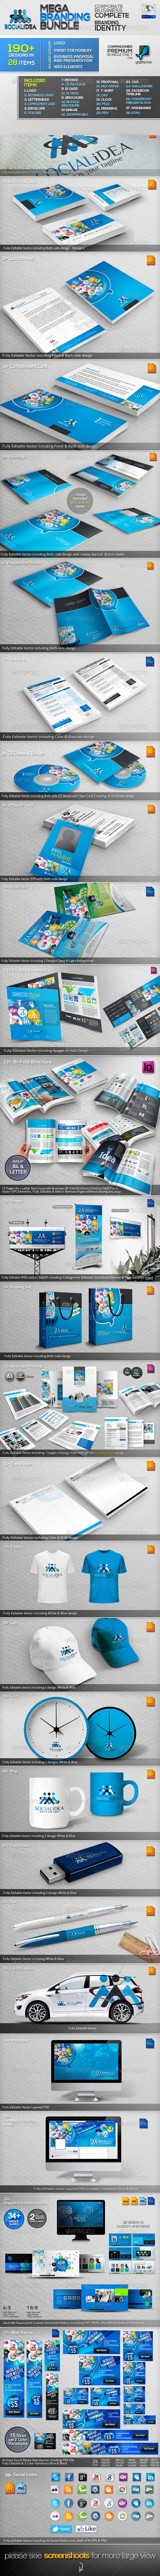 GraphicRiver Socialidea Social Media ID Mega Branding Bundle 3598981